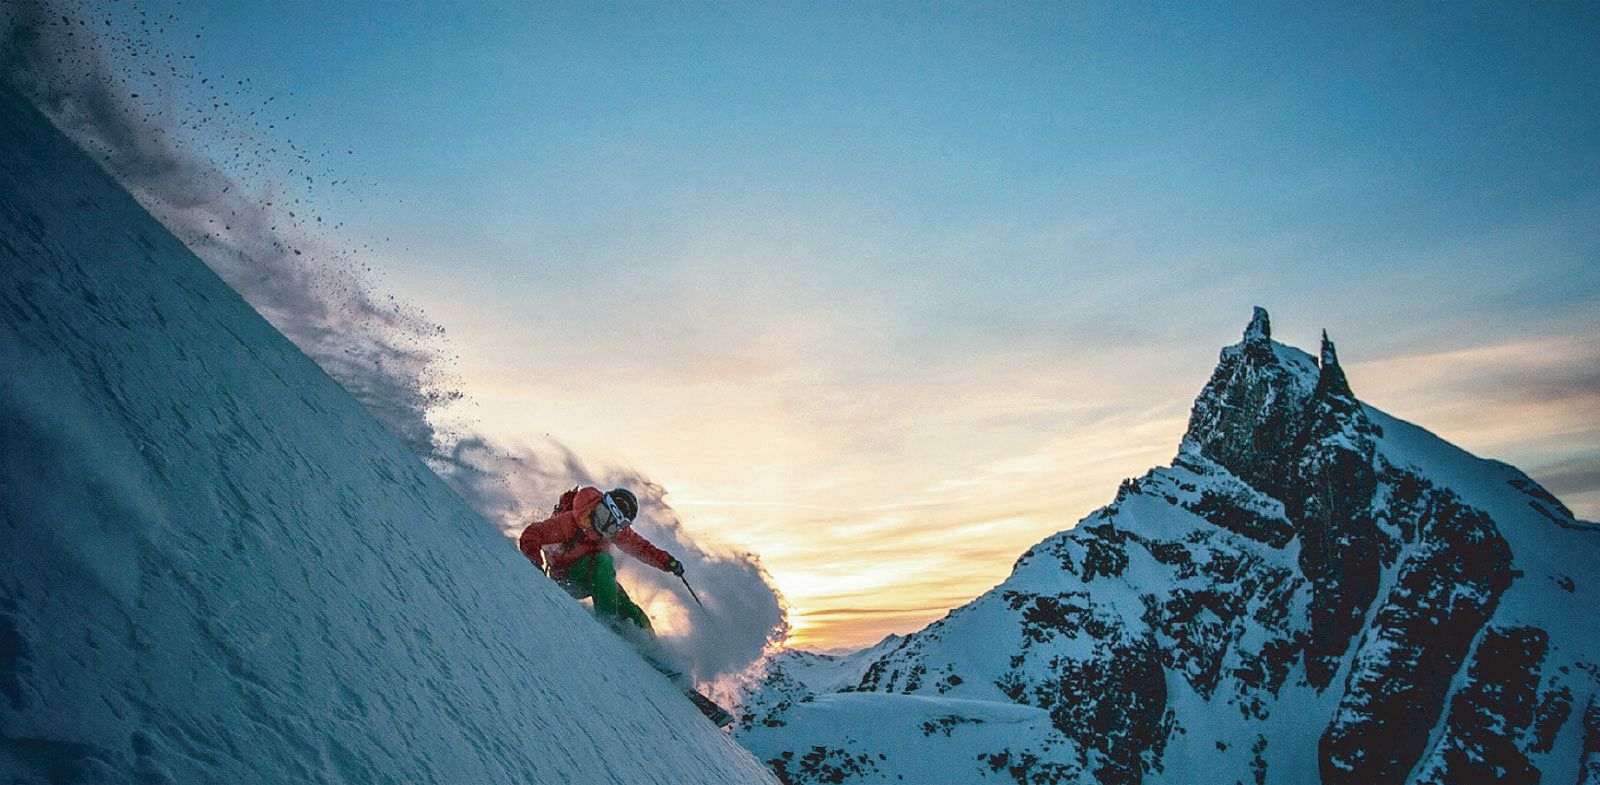 The Cleanest Line - A person skiing down a mountain.